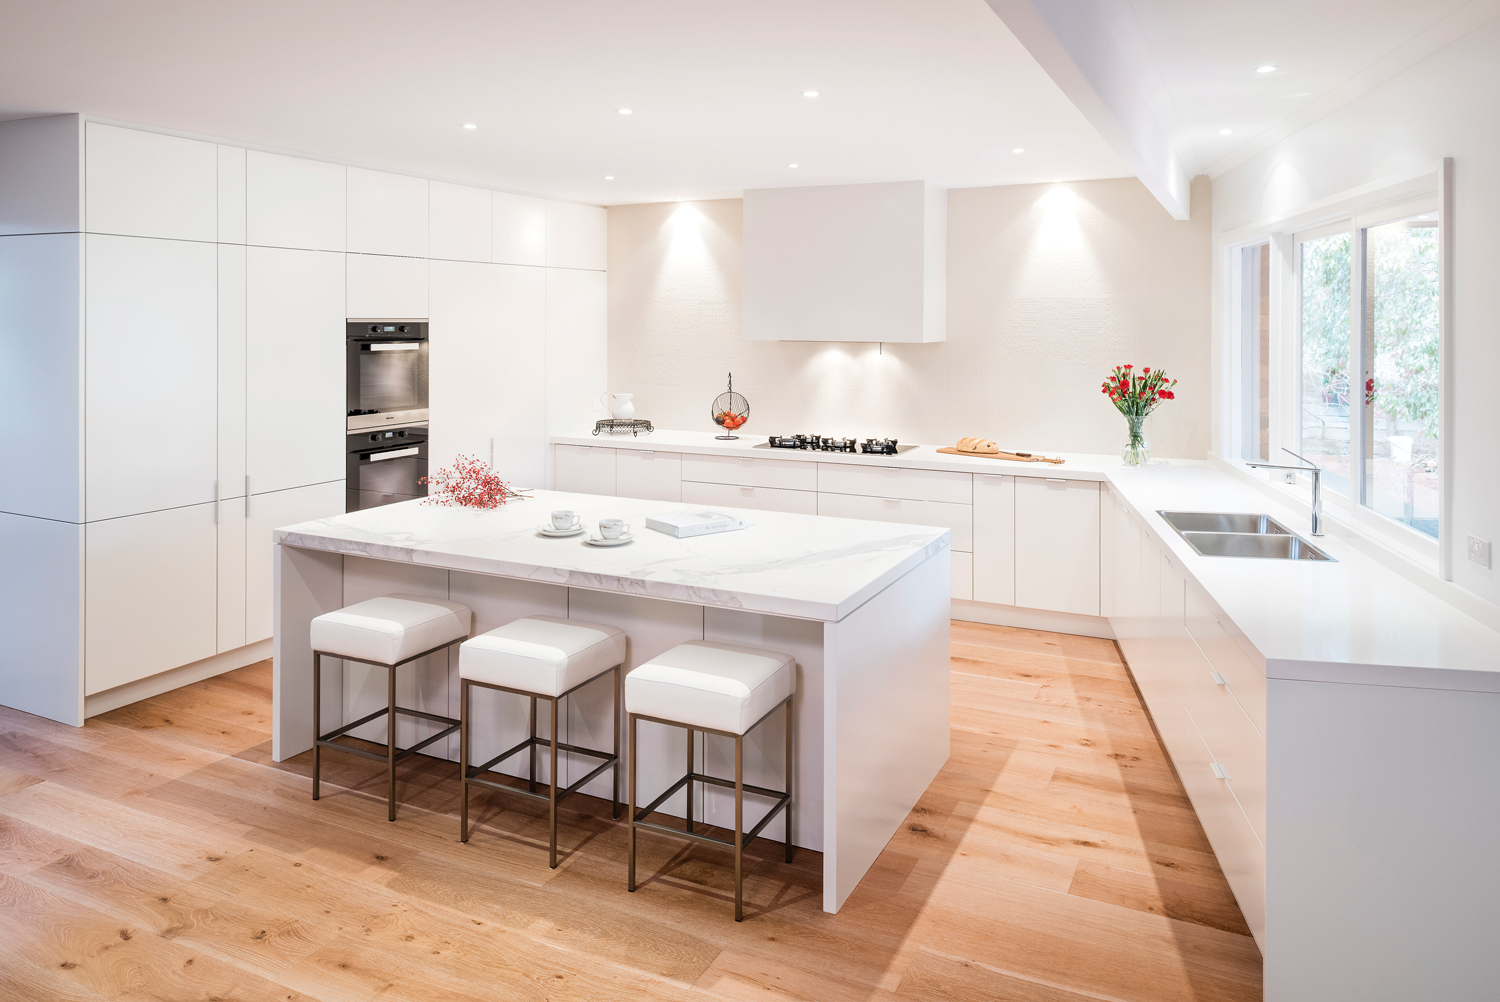 Streamlined style: kitchen design - Completehome